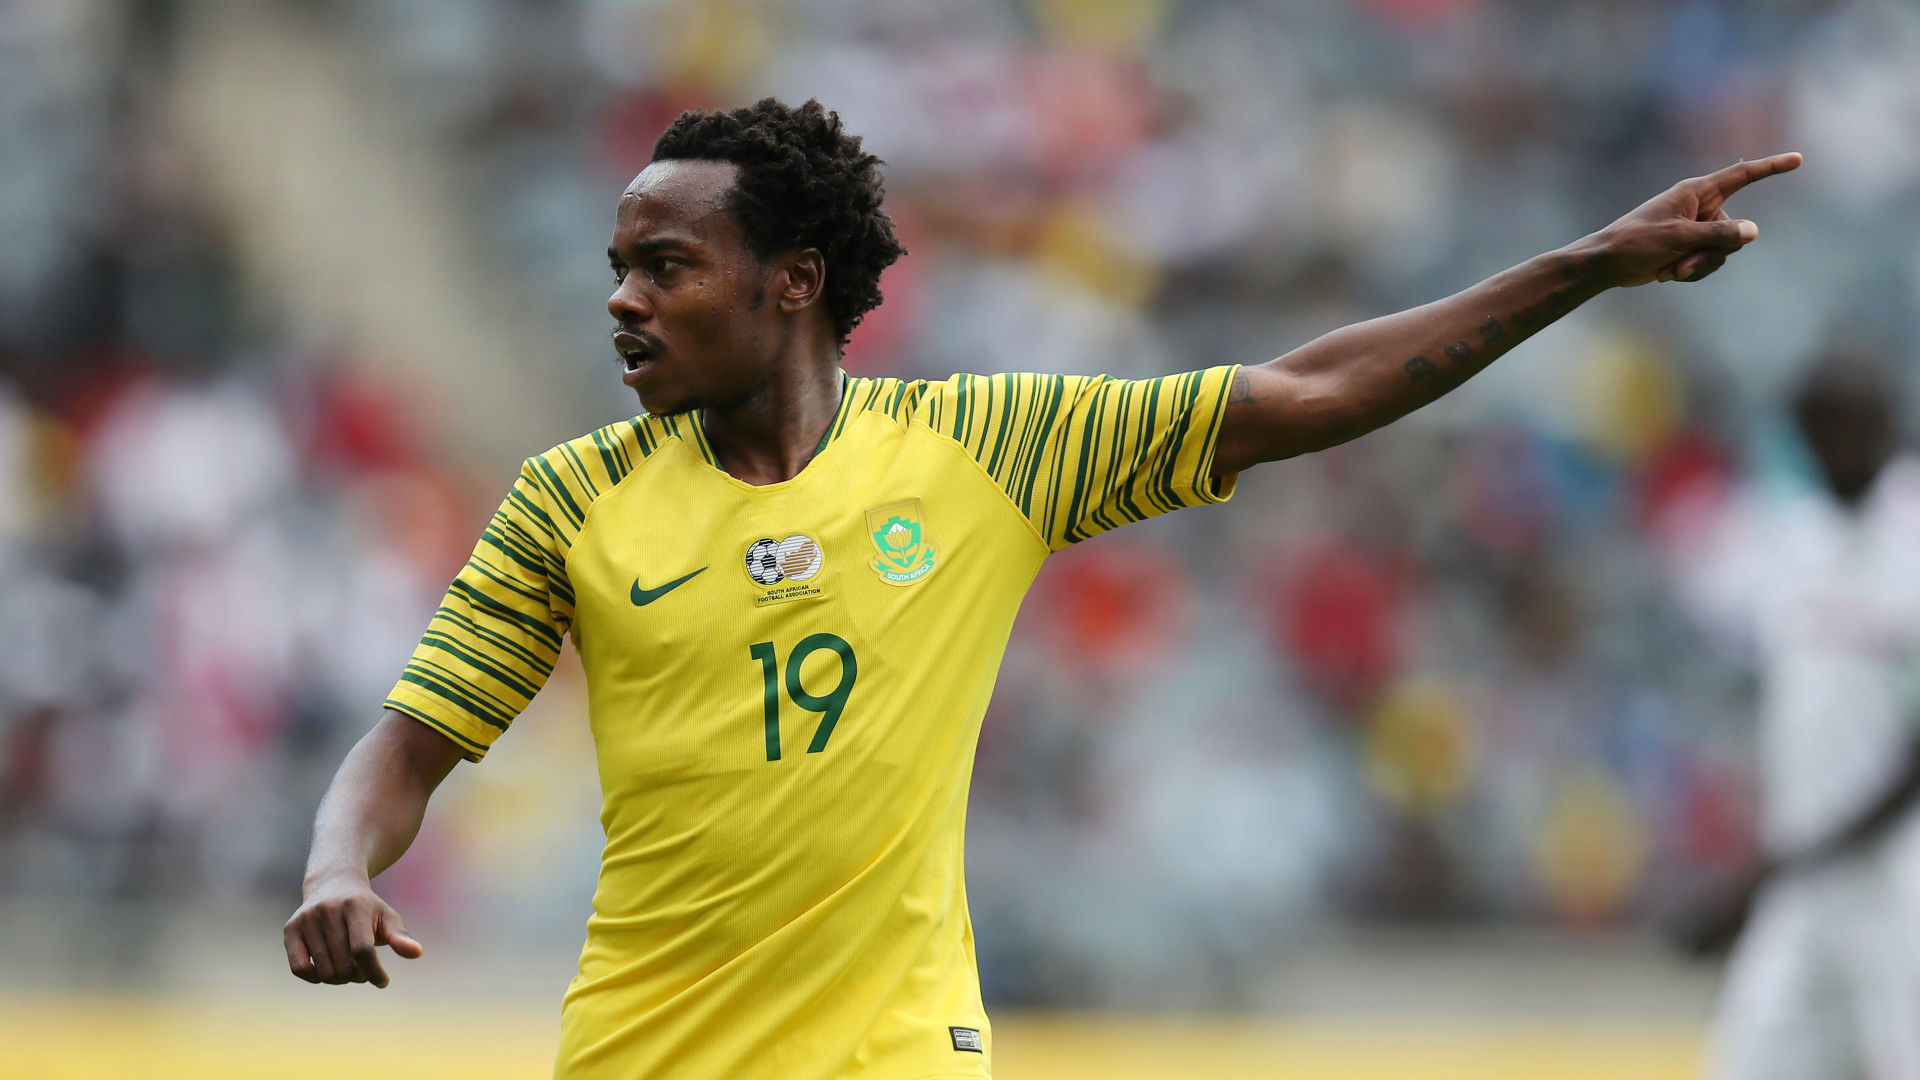 If Egypt want Salah why not have Tau for Olympics - Notoane